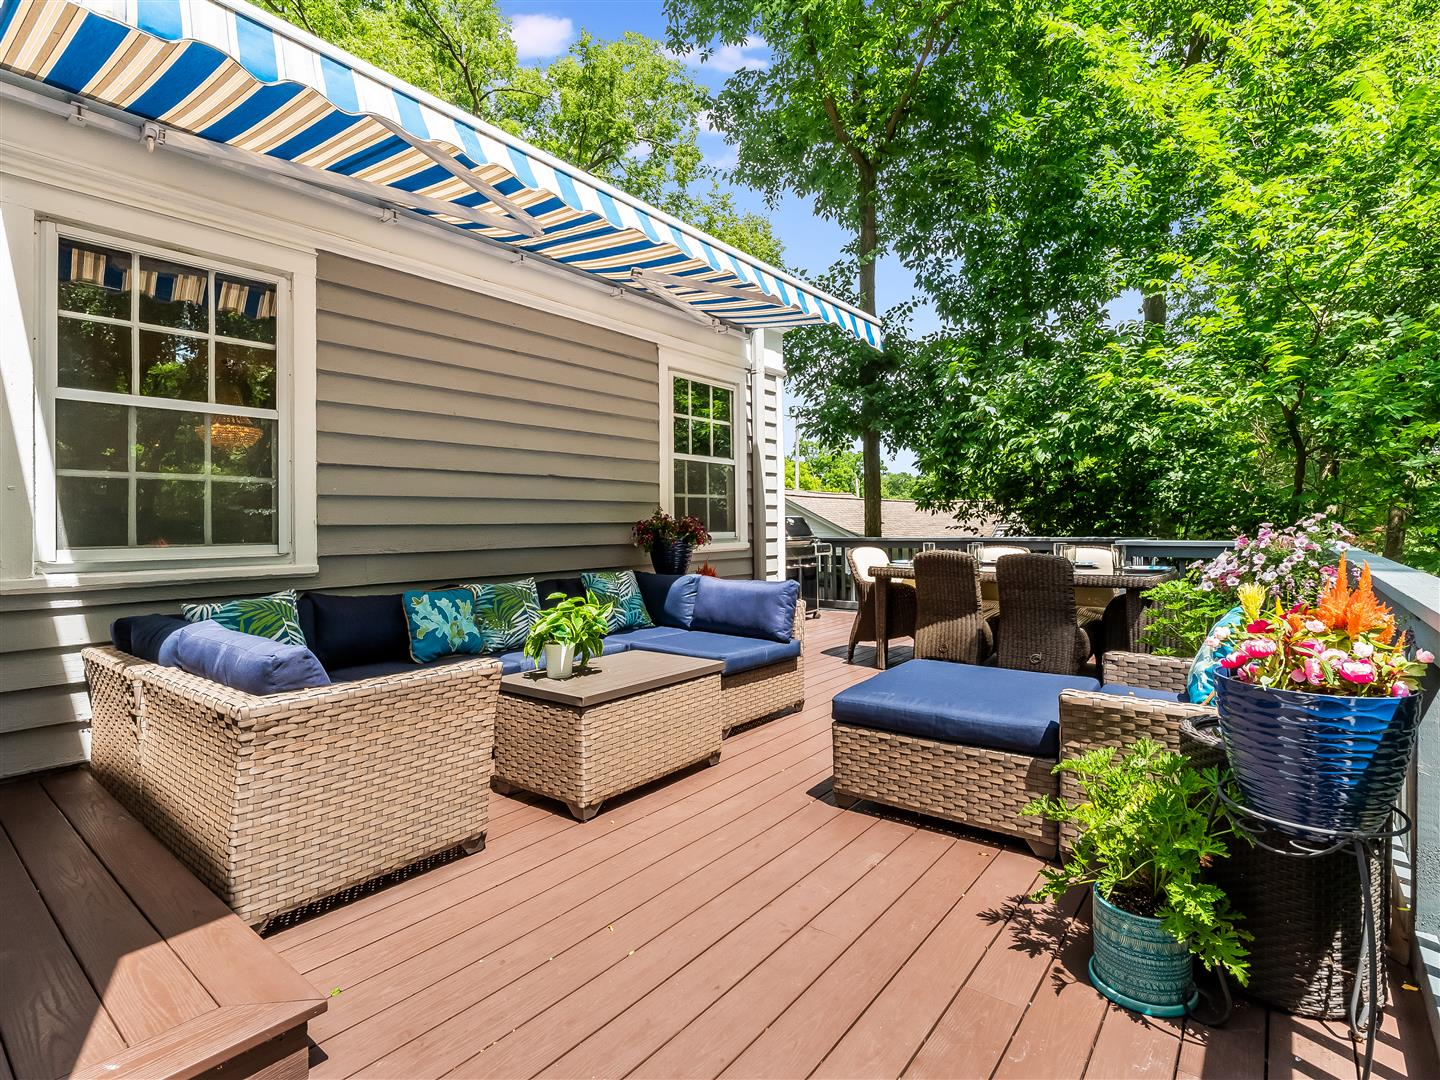 Outdoor deck with retractable awning, a dining space and conversational section surrounded by lush green trees.